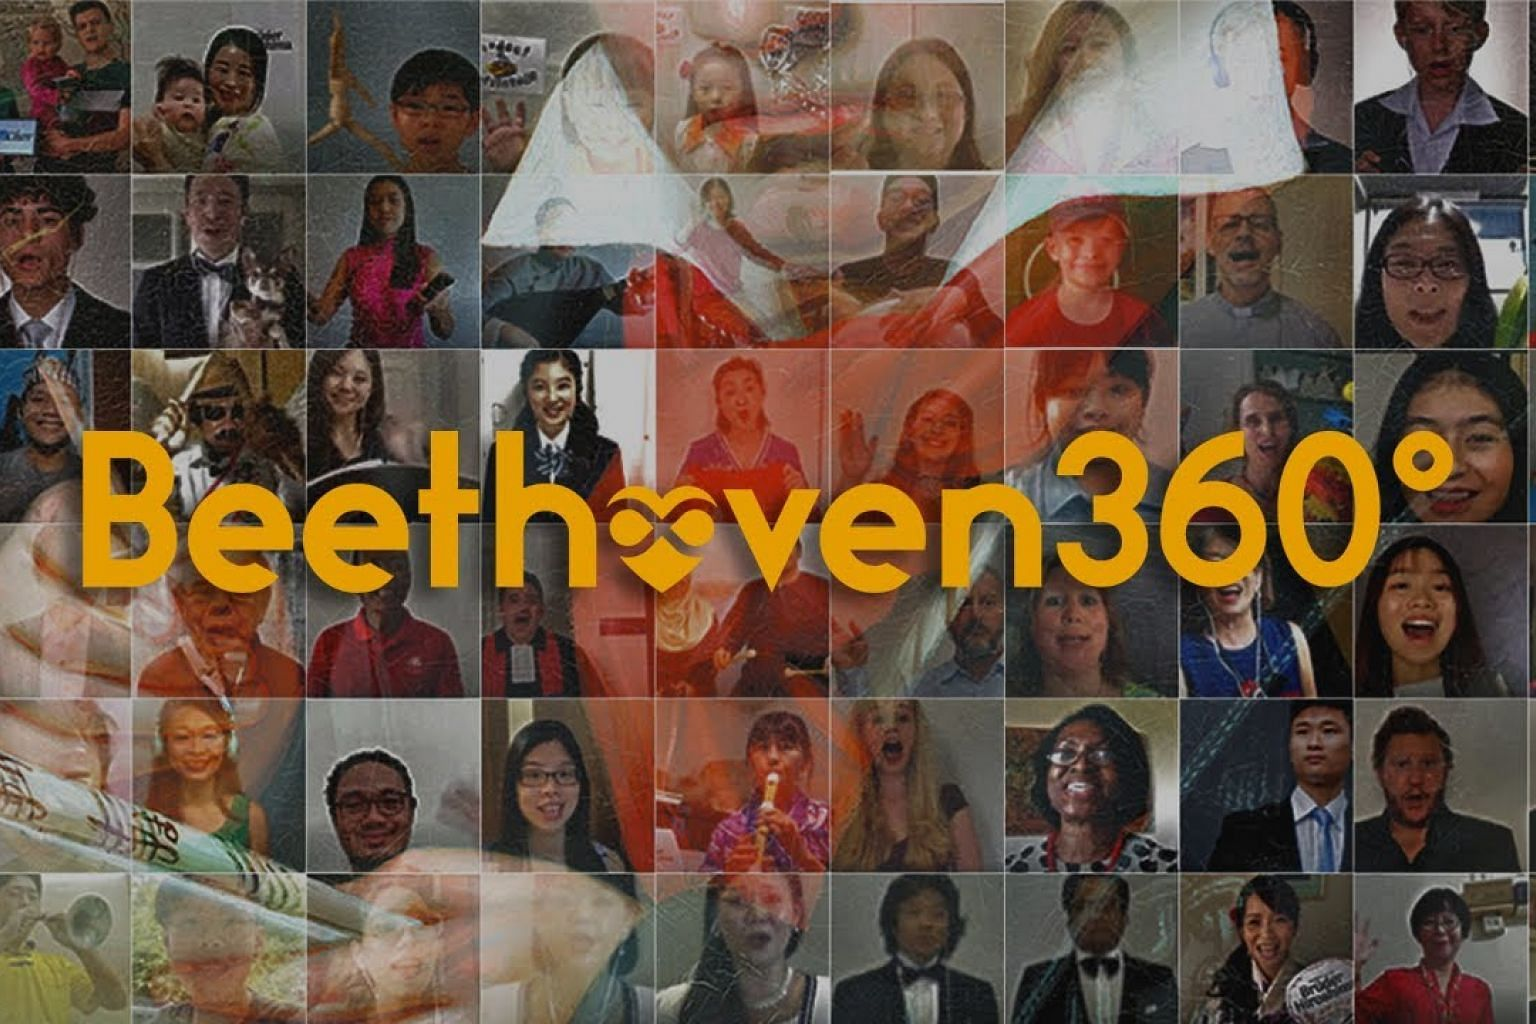 Beeth∞ven 360° - Ode to Joy: World's first immersive digital performance of Beethoven's 9th Symphony